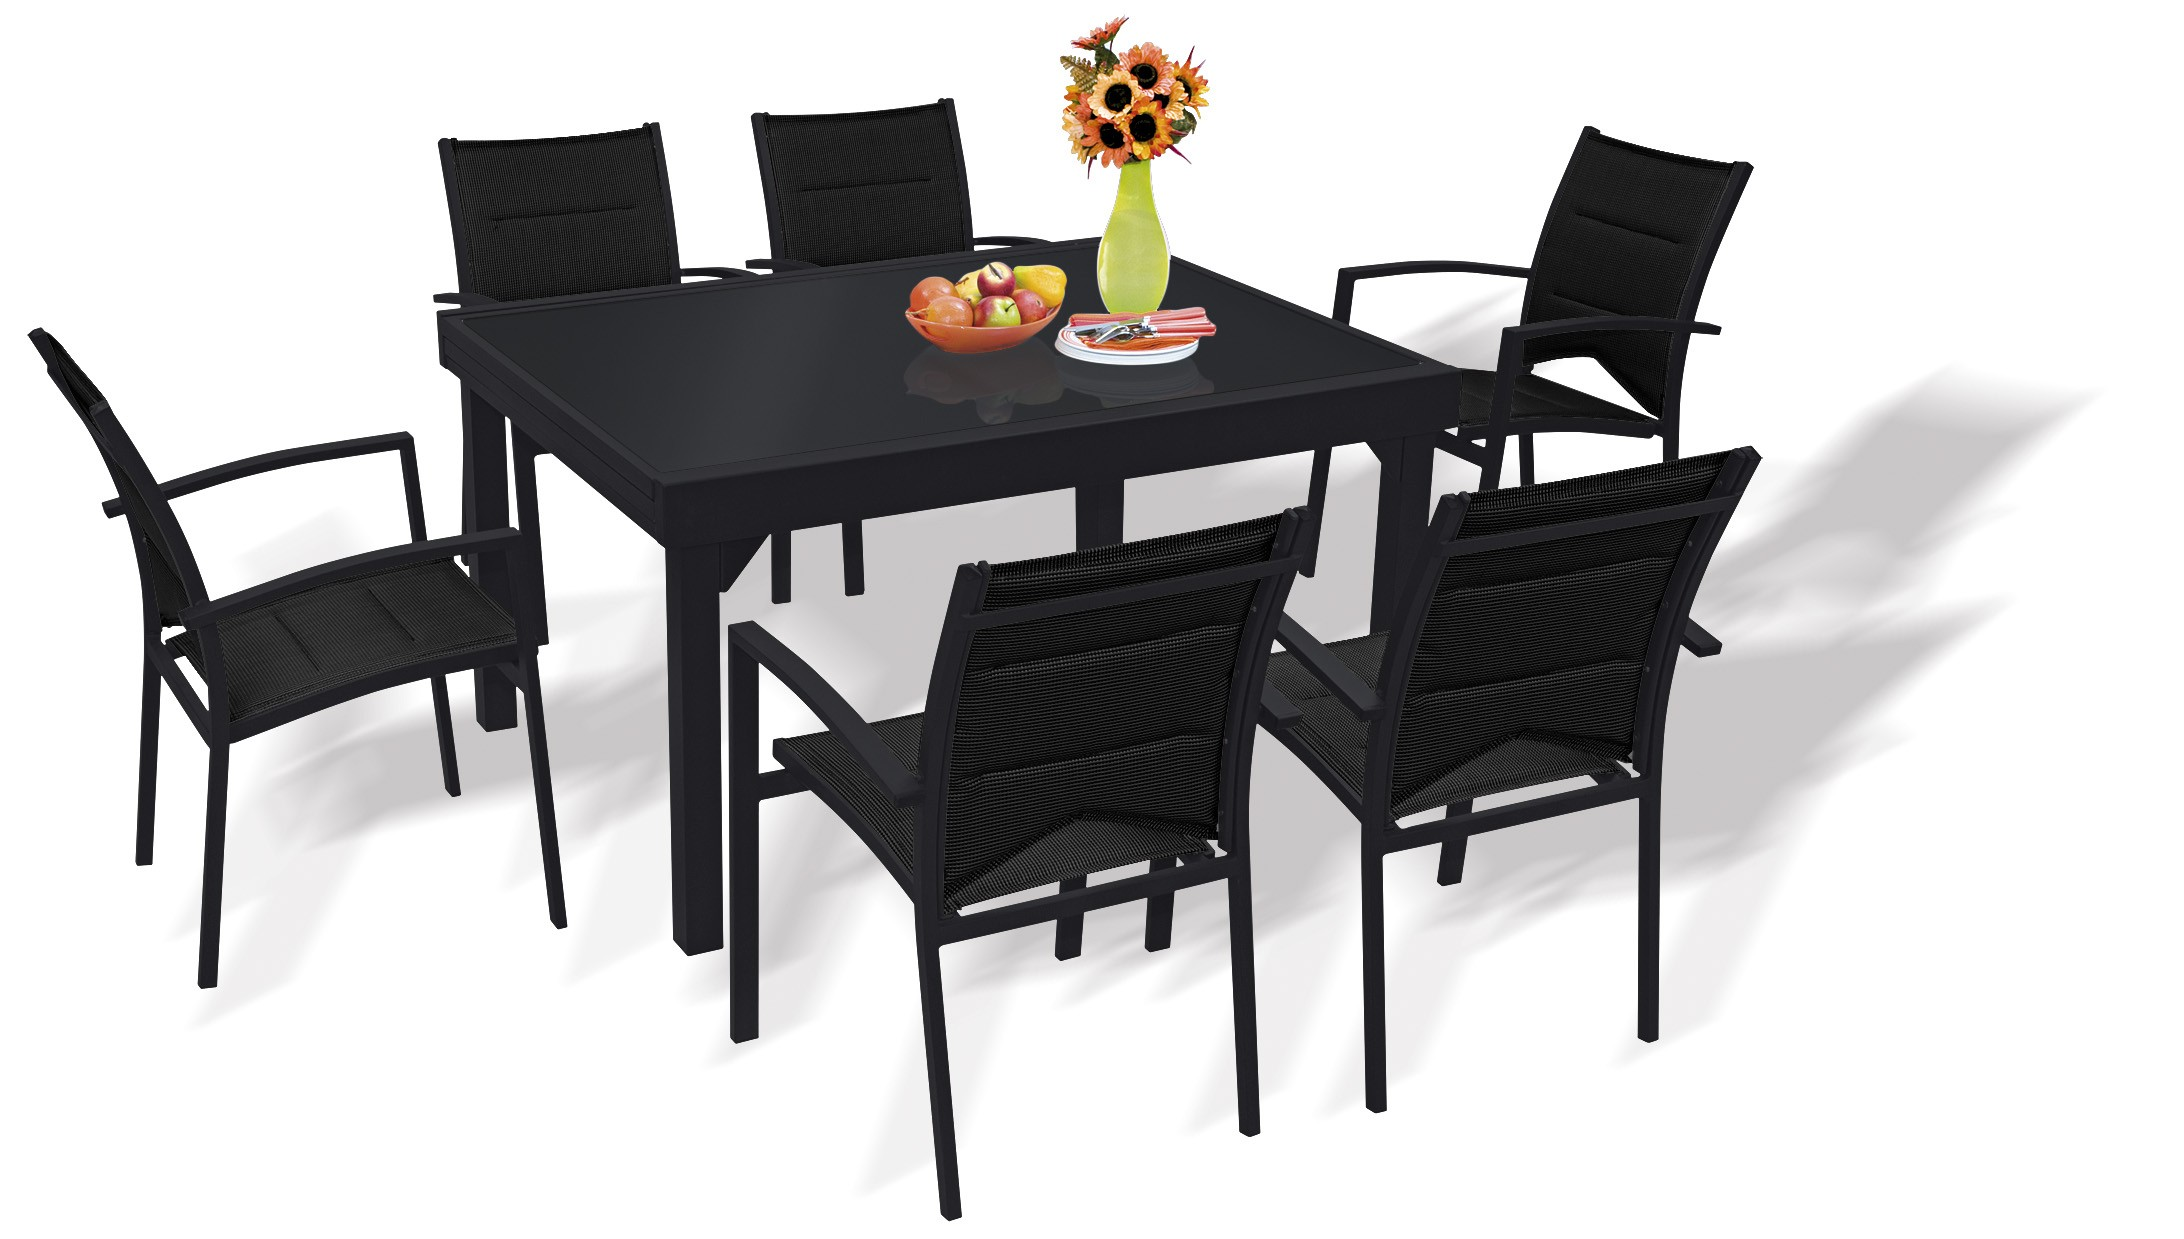 Table carre 12 personnes elegant table a manger carr e for Table salle a manger carree 12 personnes